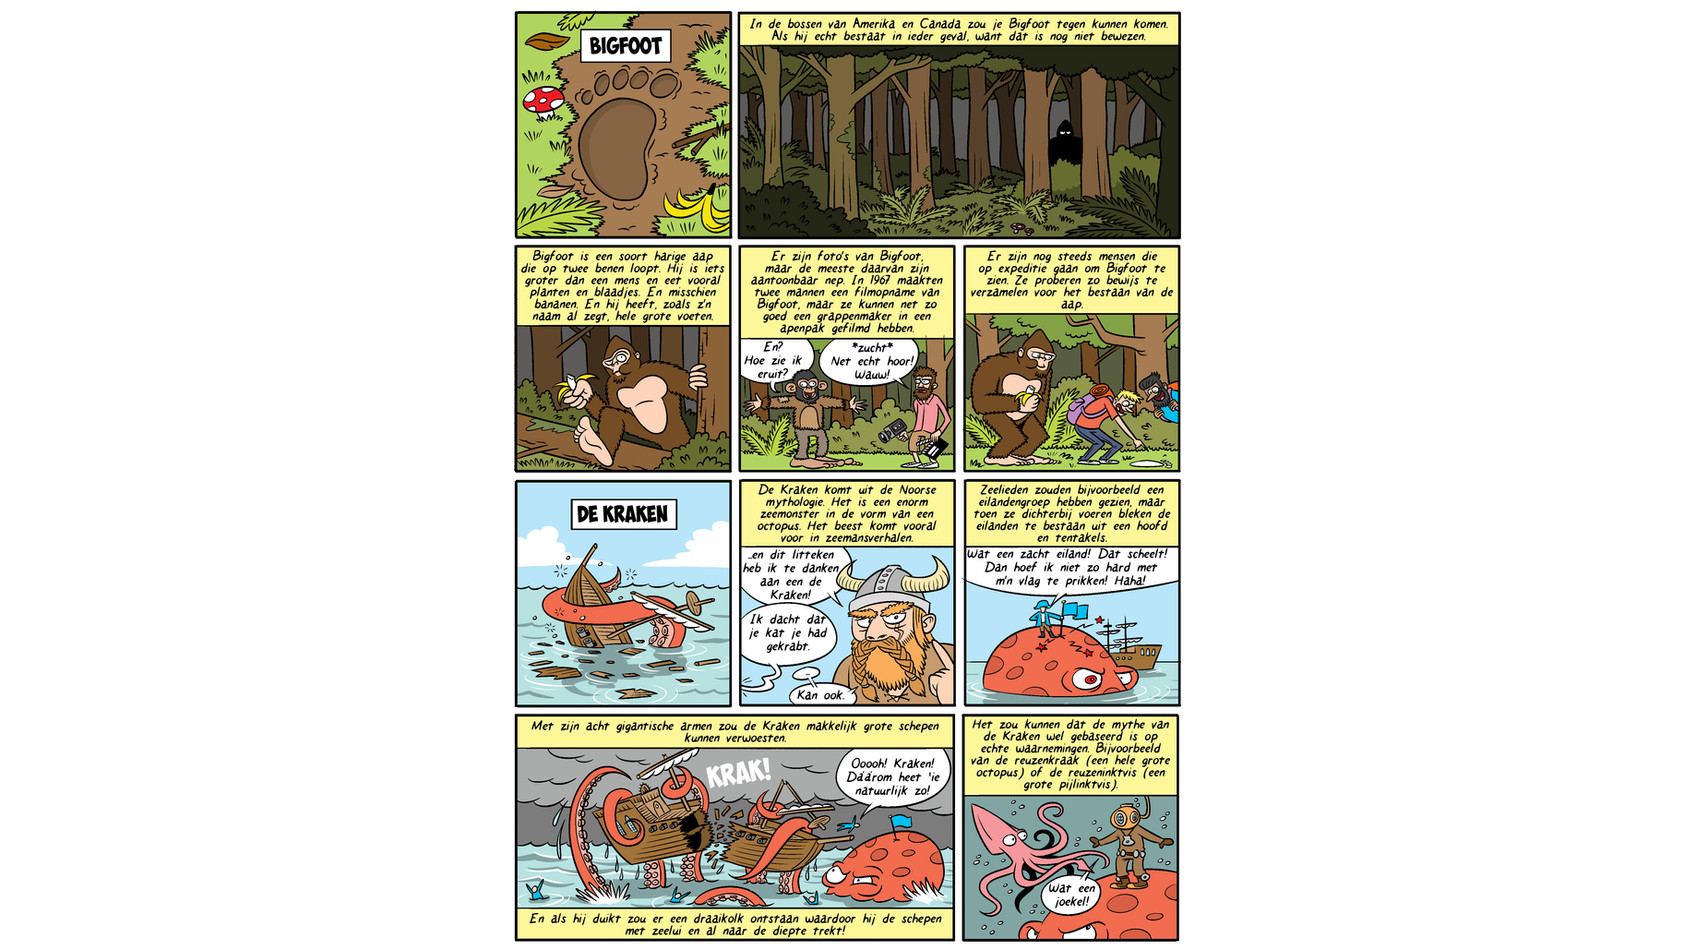 Pagina over Bigfoot en de Kraken